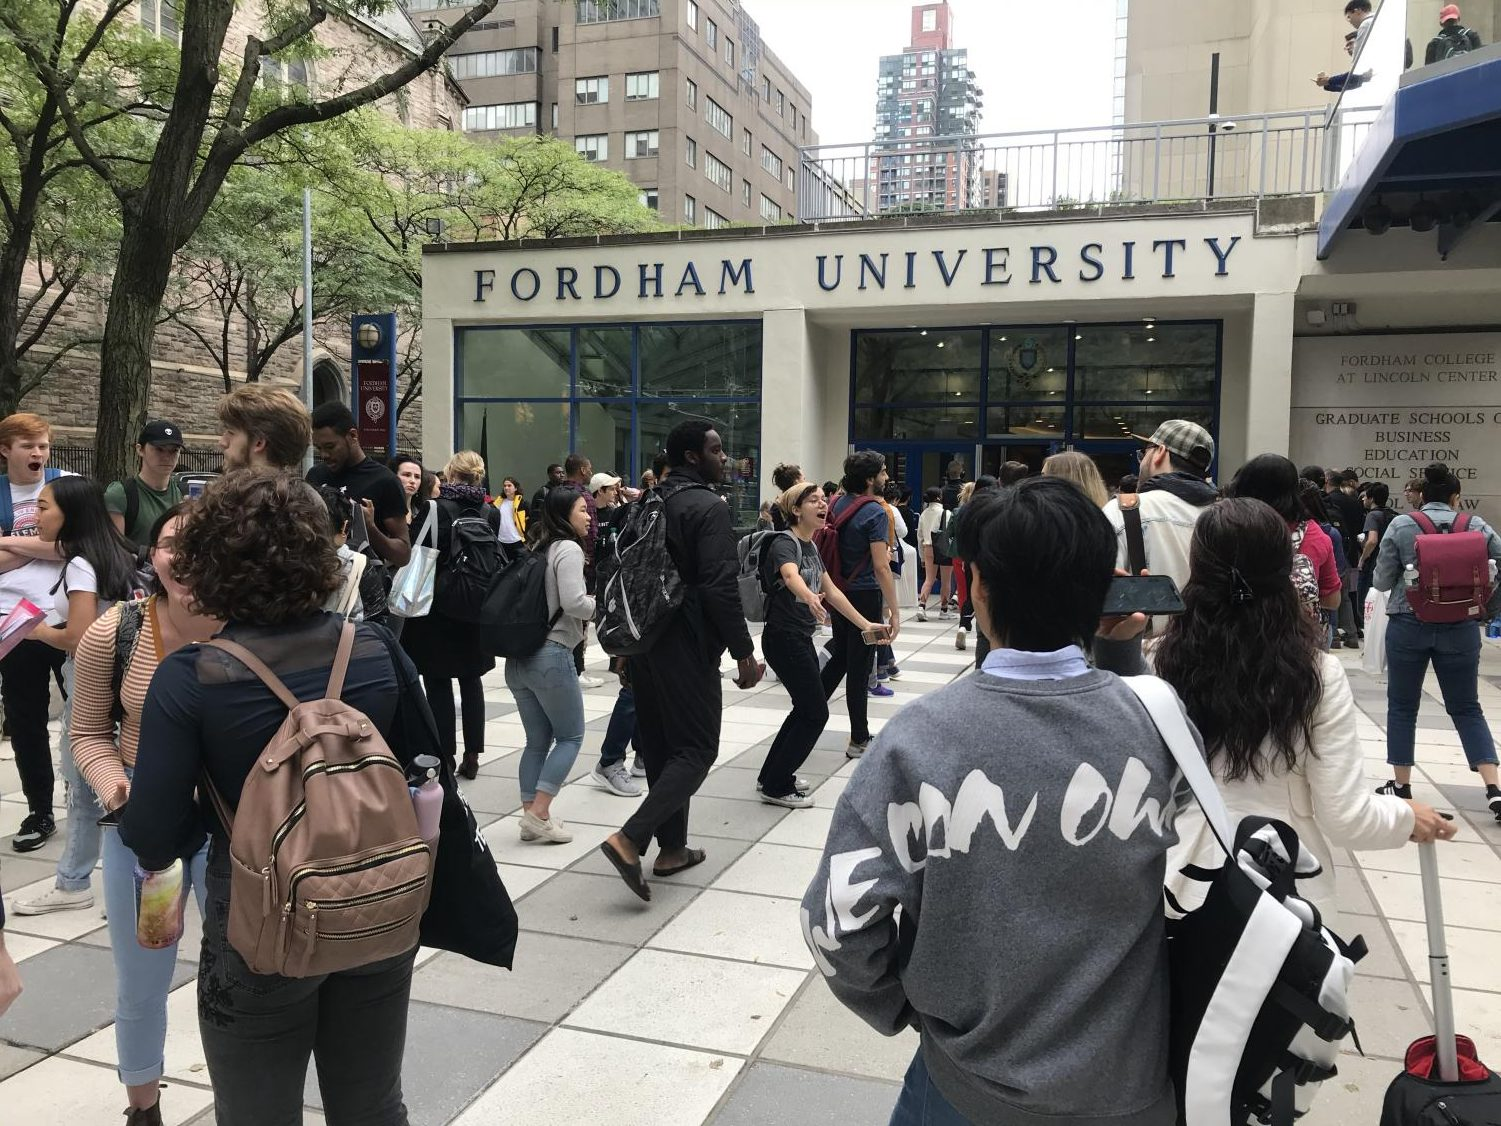 Students and faculty approaching the University from the Columbus Circle metro station reported alarm upon seeing the crowd gathered outside.